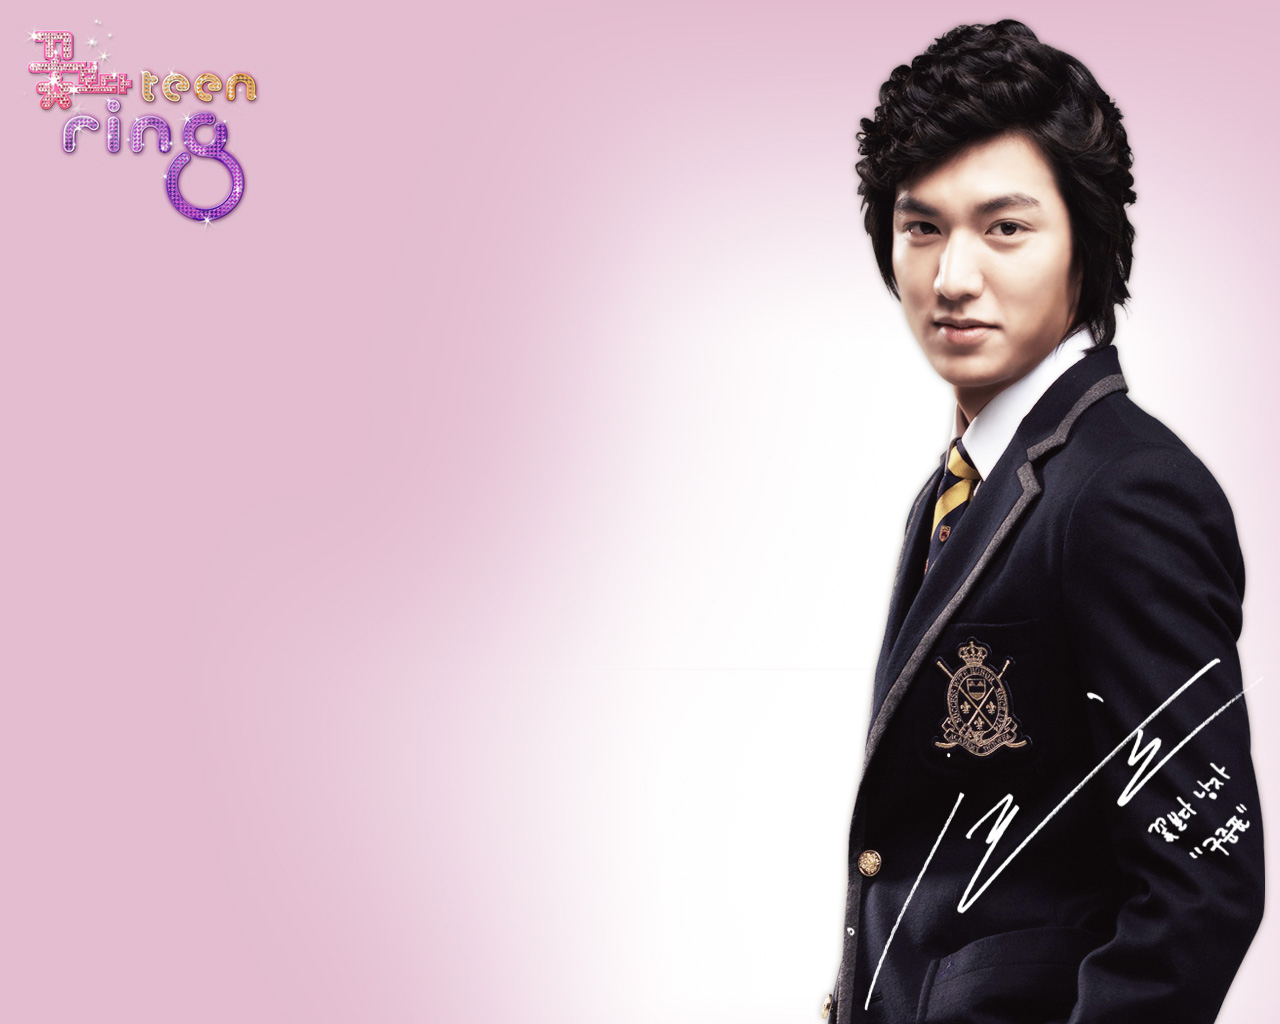 Boys Over Flowers Wallpaper Jun Pyo